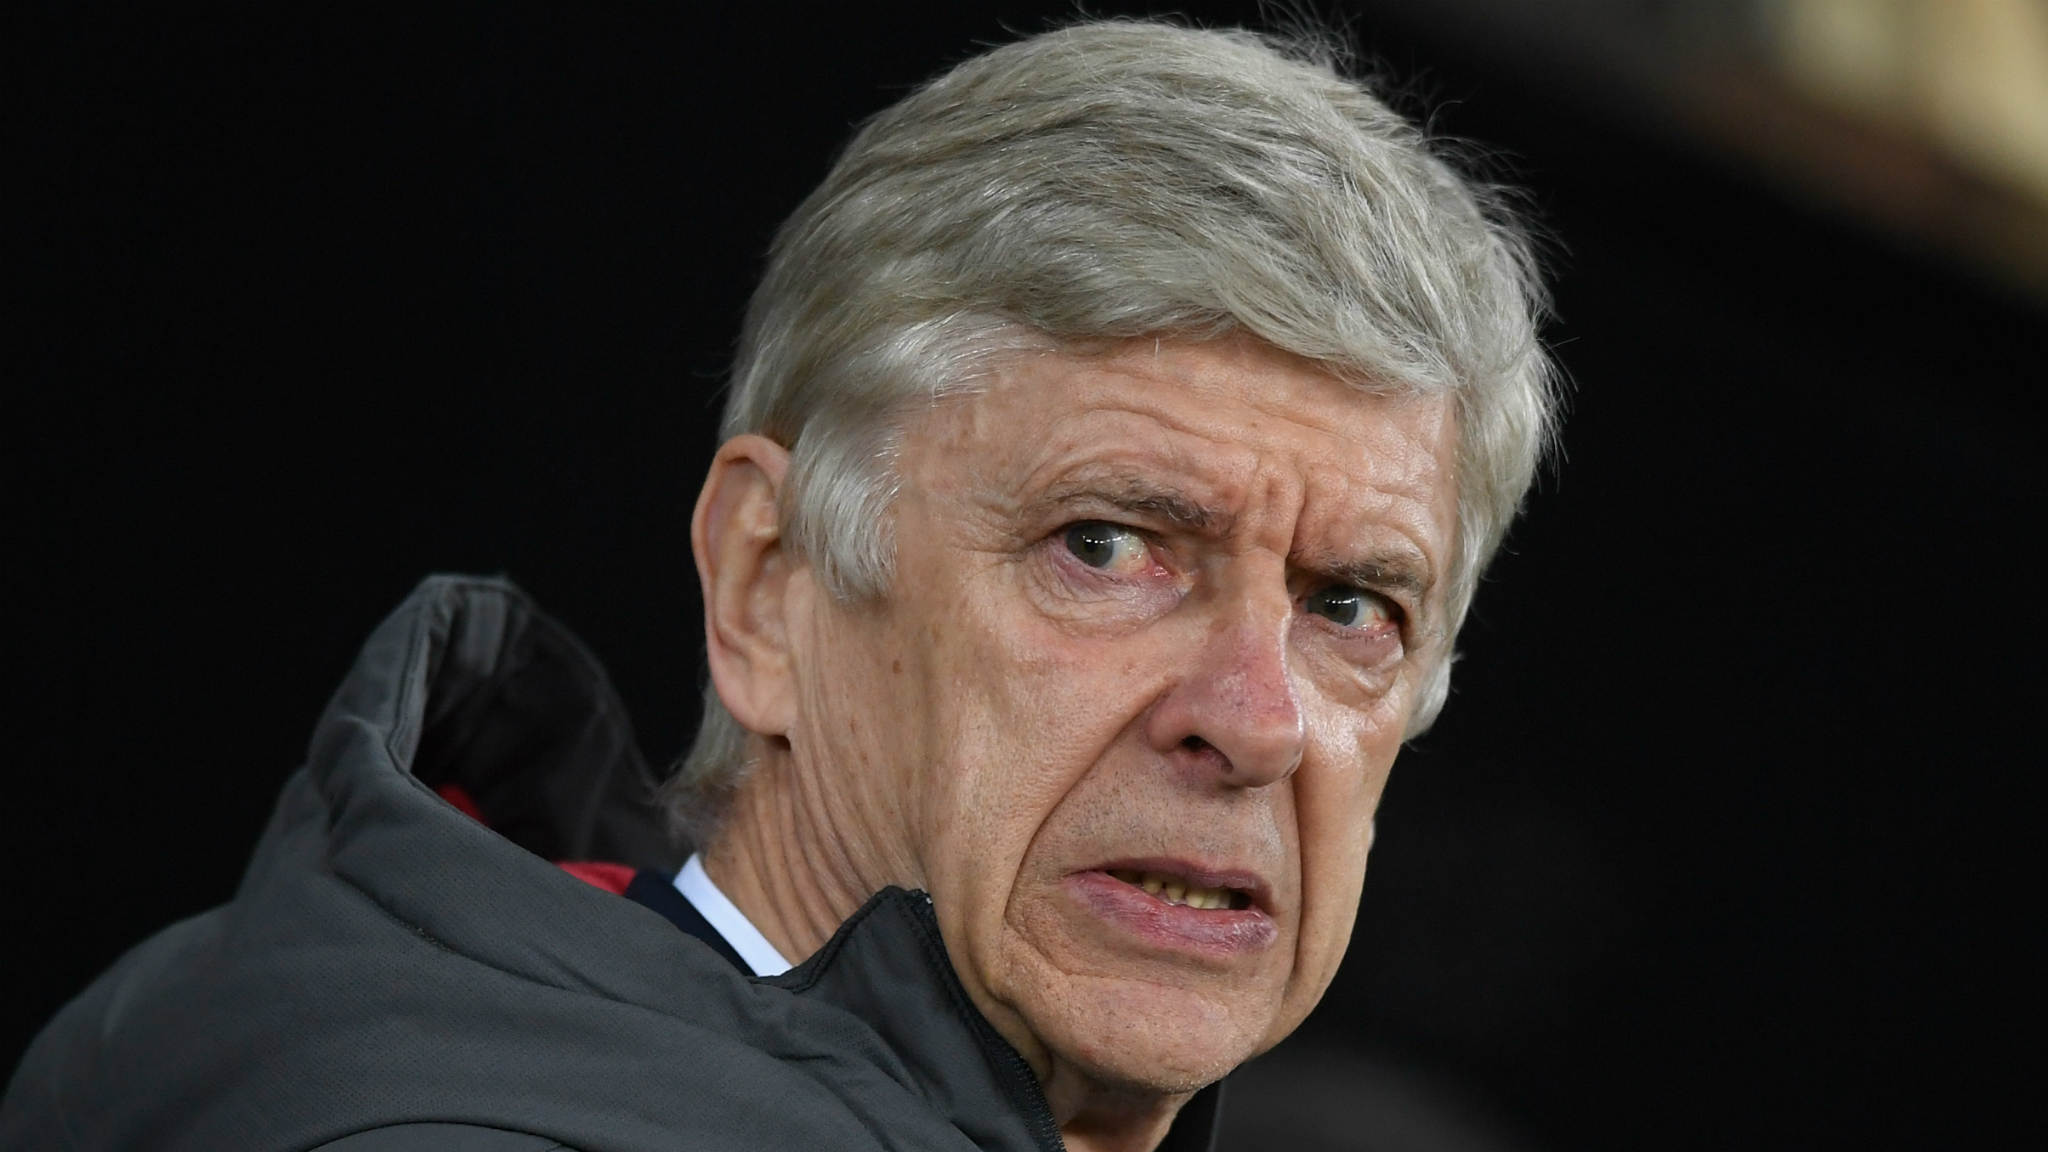 Arsenal had a 'great' transfer window but are they a club 'at war'?